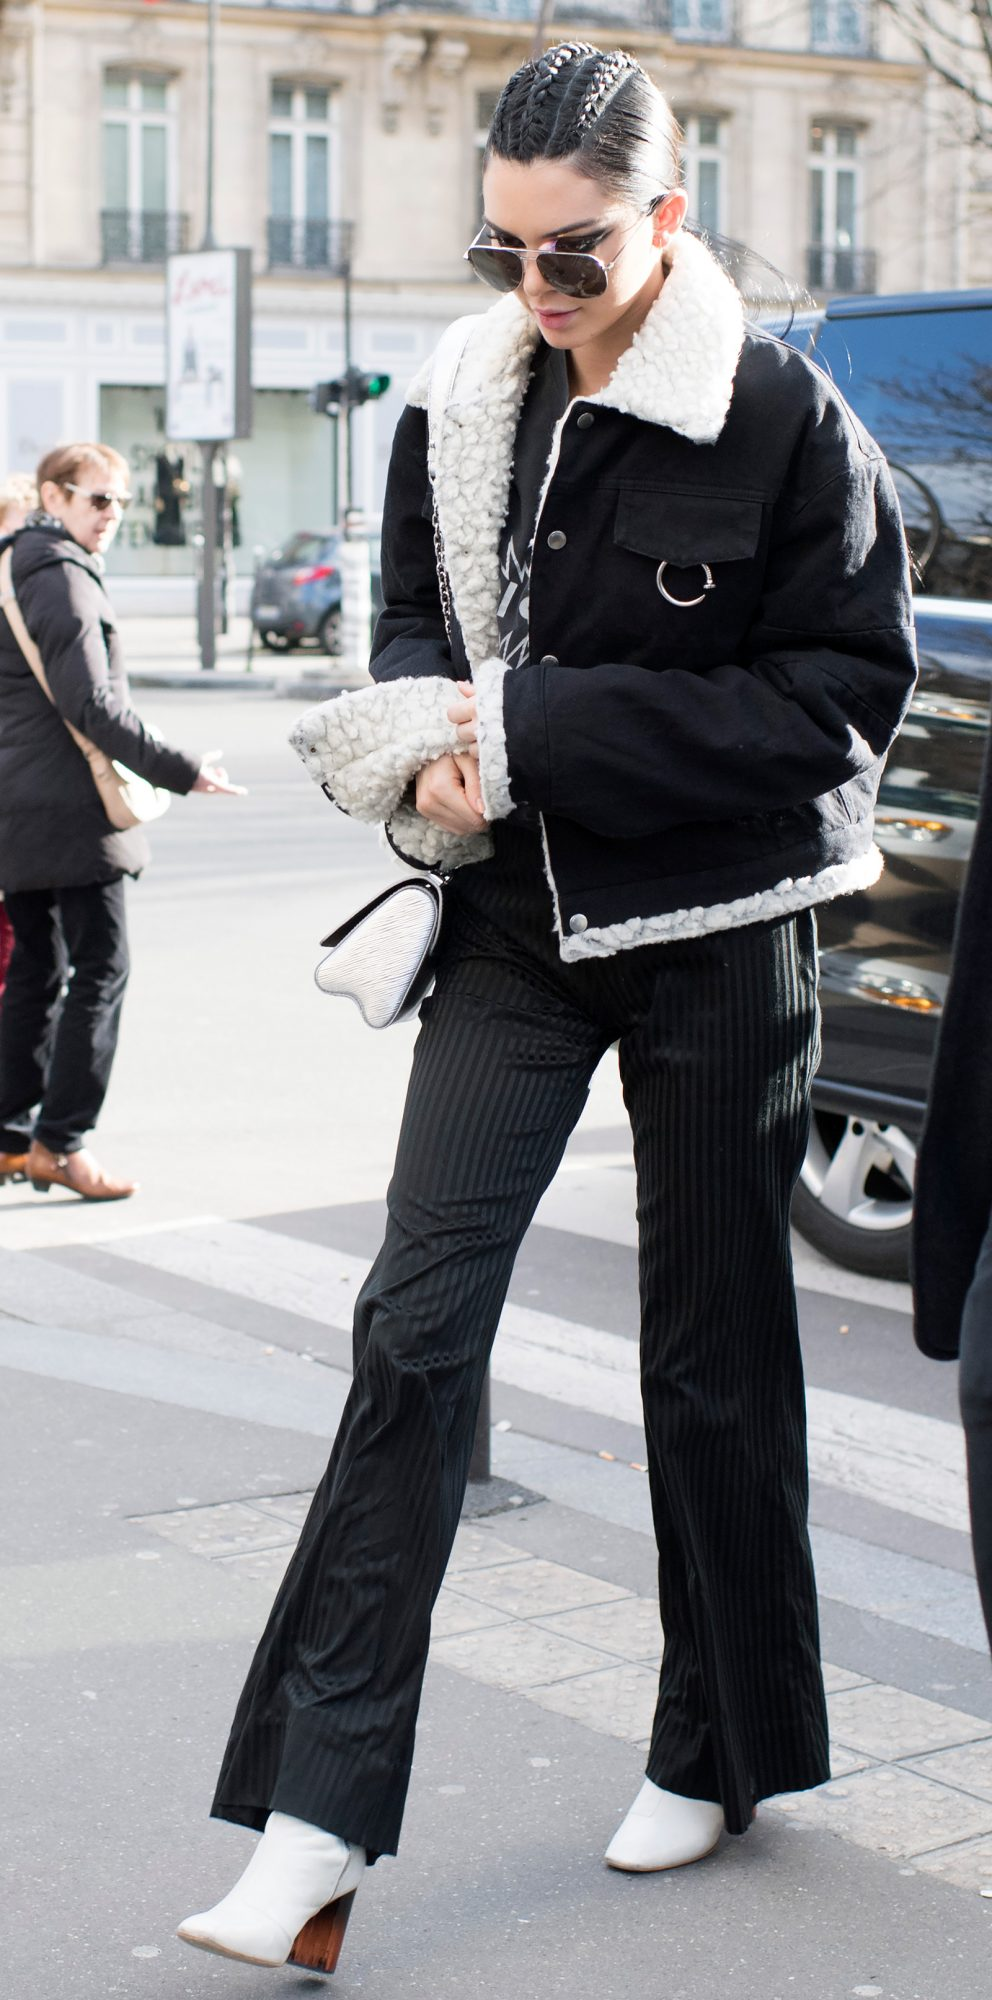 promo code ecf74 9466b Kendall Jenner s Chic Street Style   InStyle.com